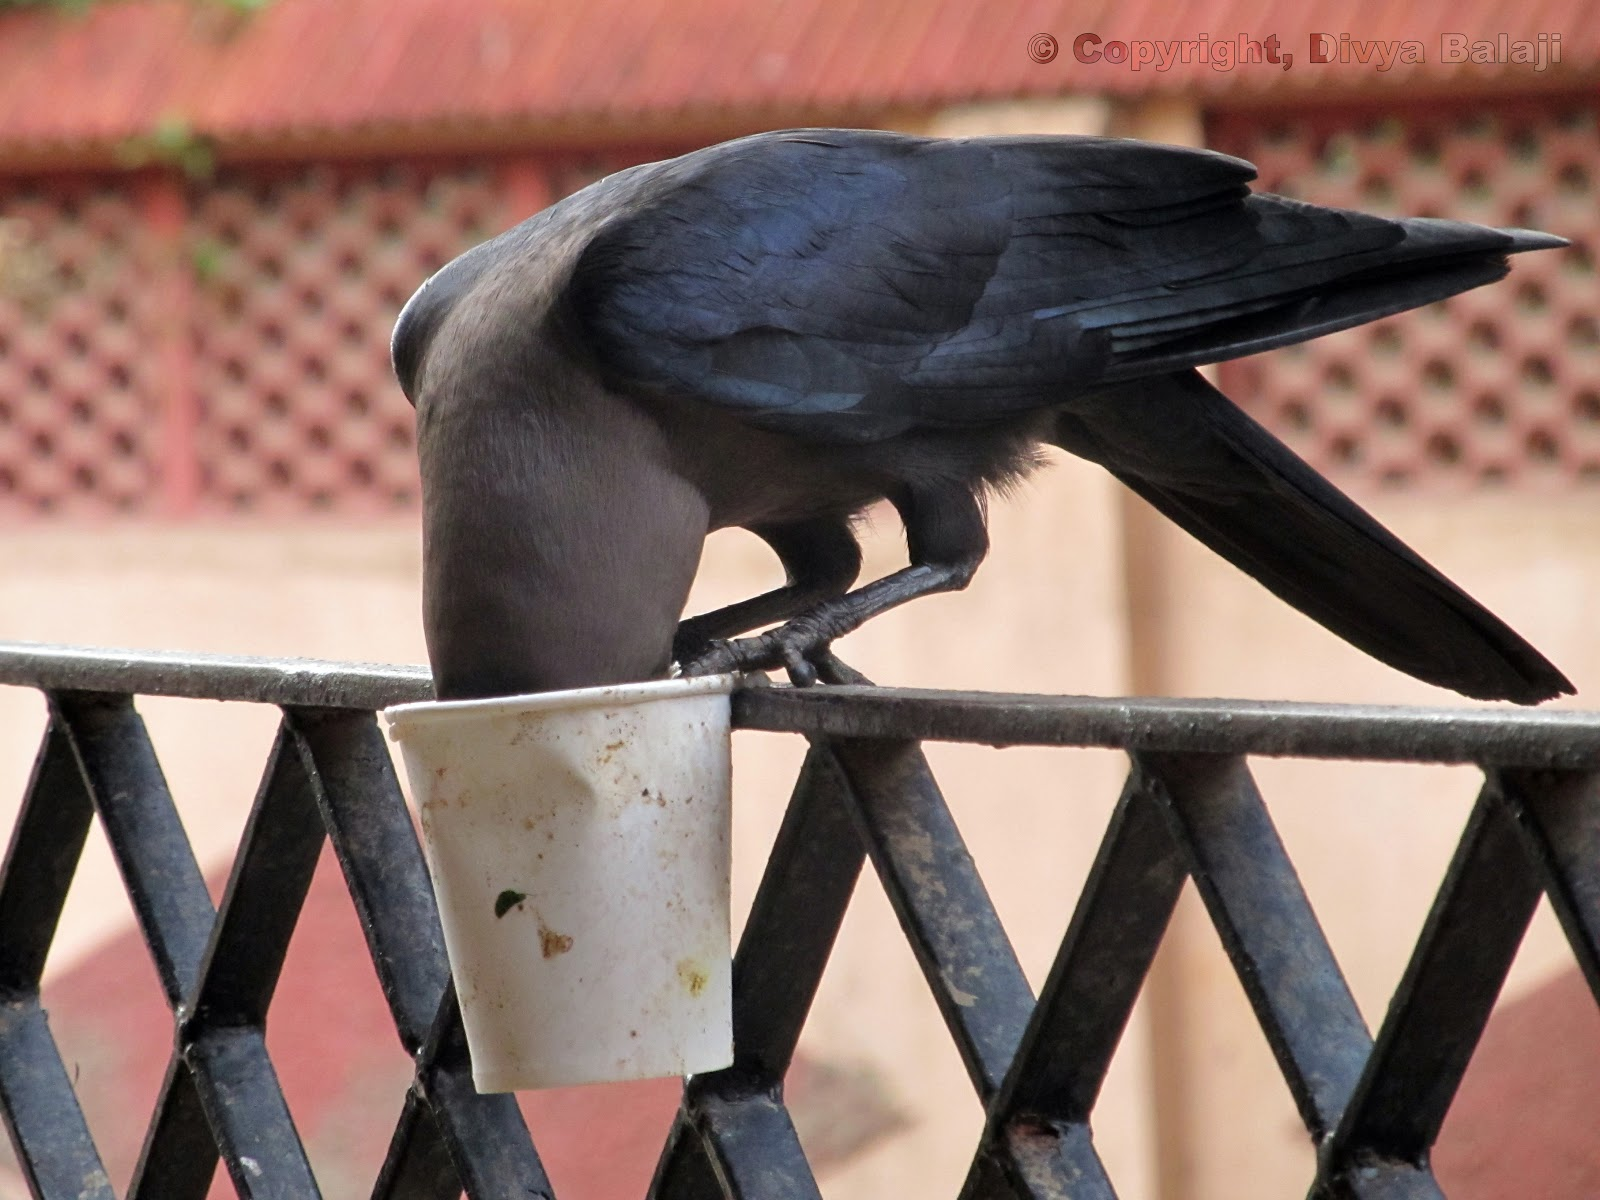 crow feeding from the cup which it is holding in its claws